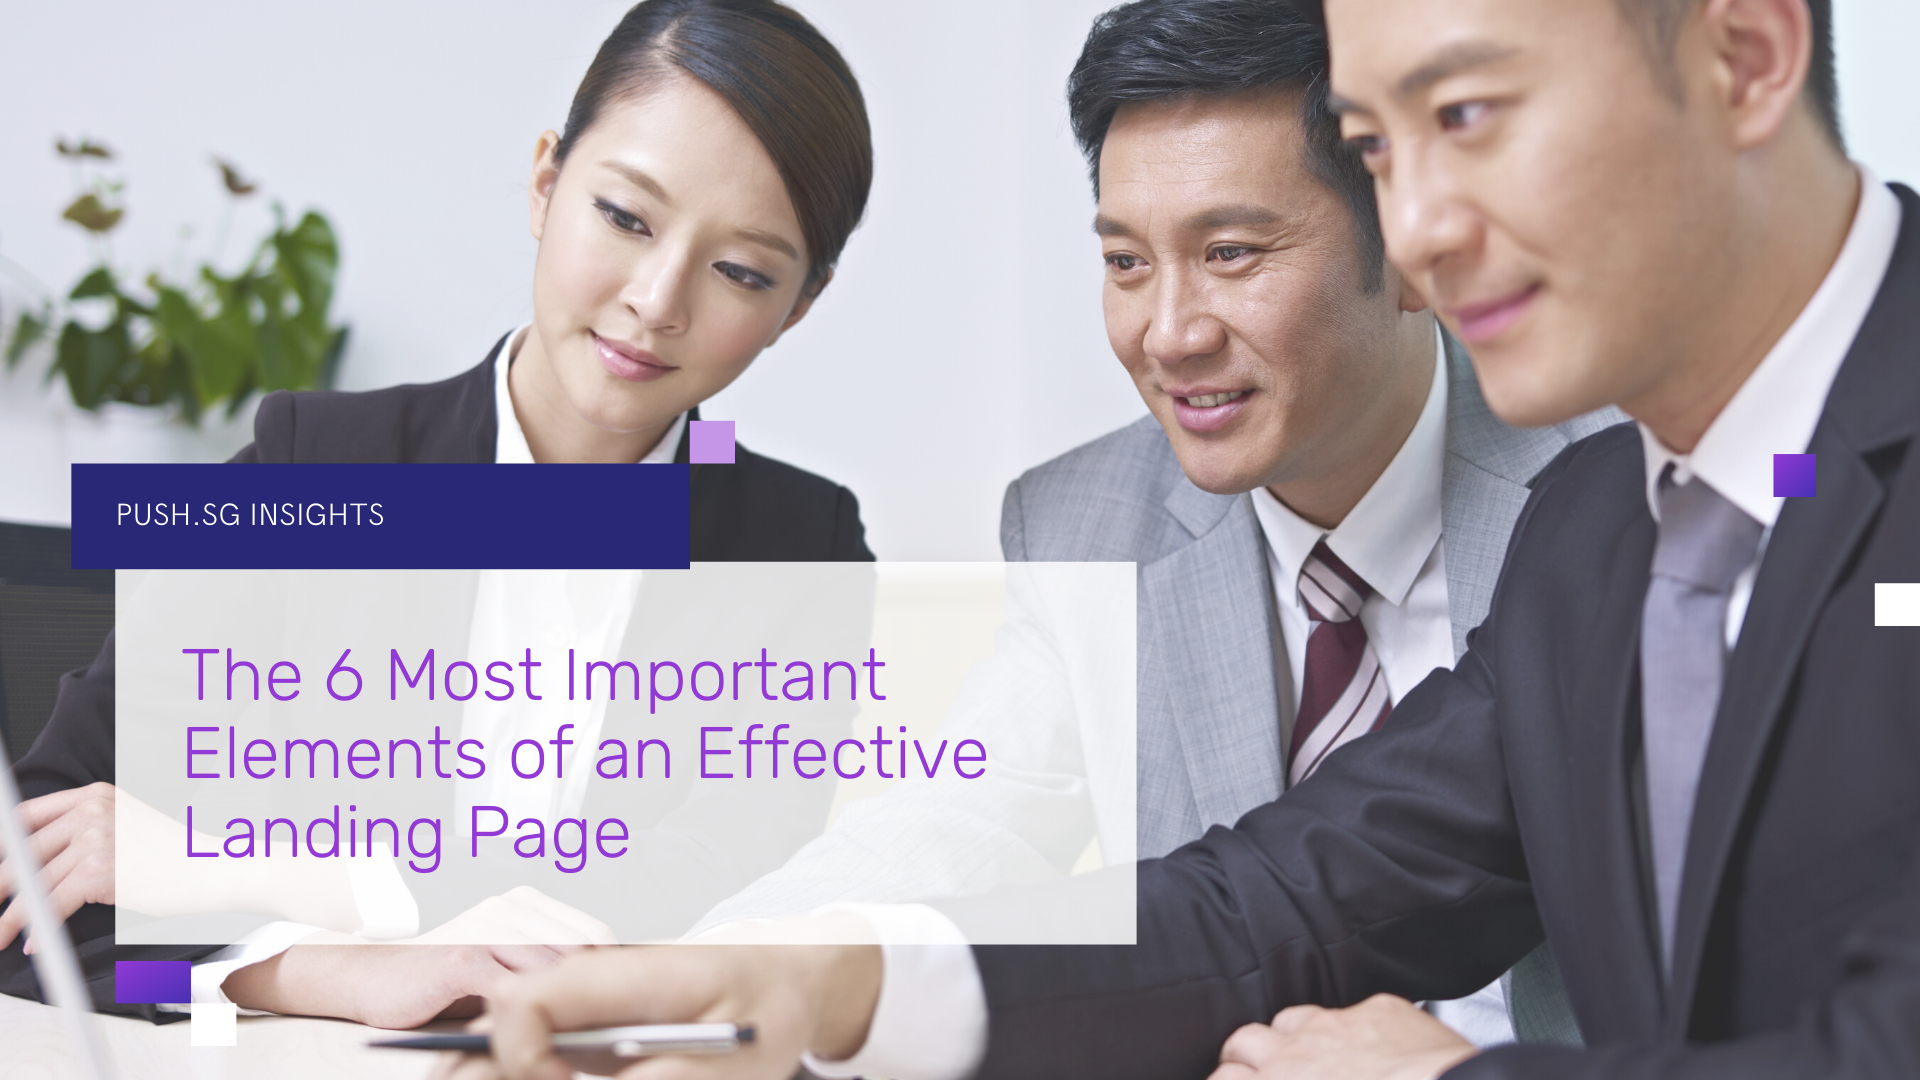 The 6 Most Important Elements of an Effective Landing Page